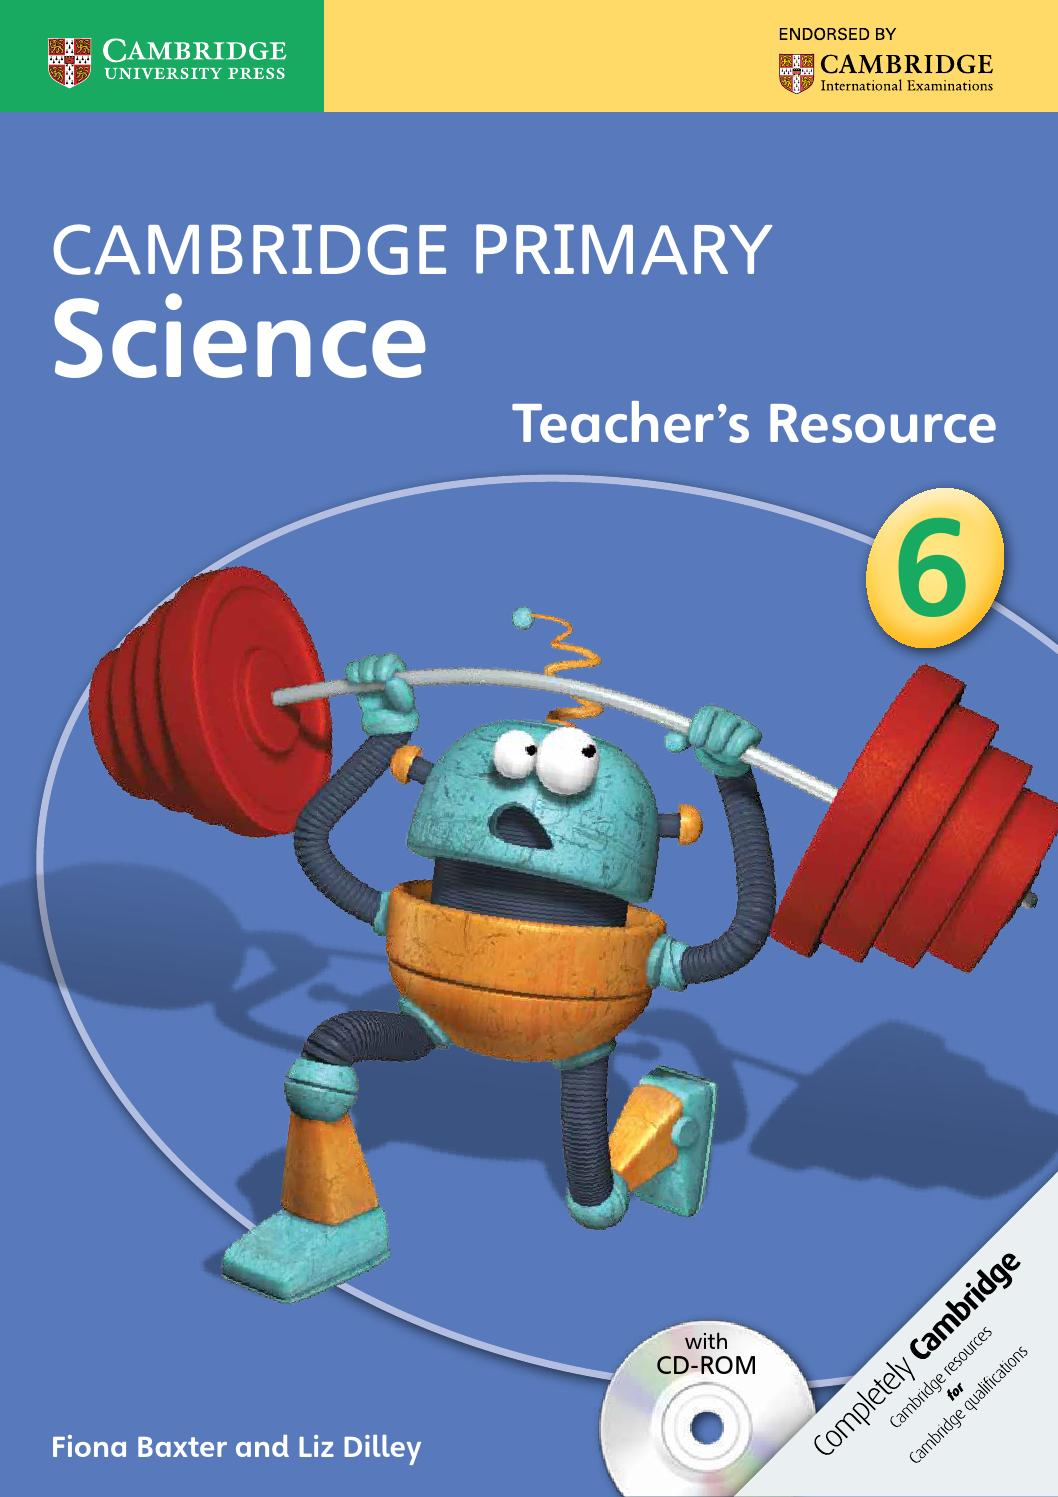 hight resolution of Cambridge Primary Science Teacher's Resource Book 6 with CD-ROM by Cambridge  University Press Education - issuu